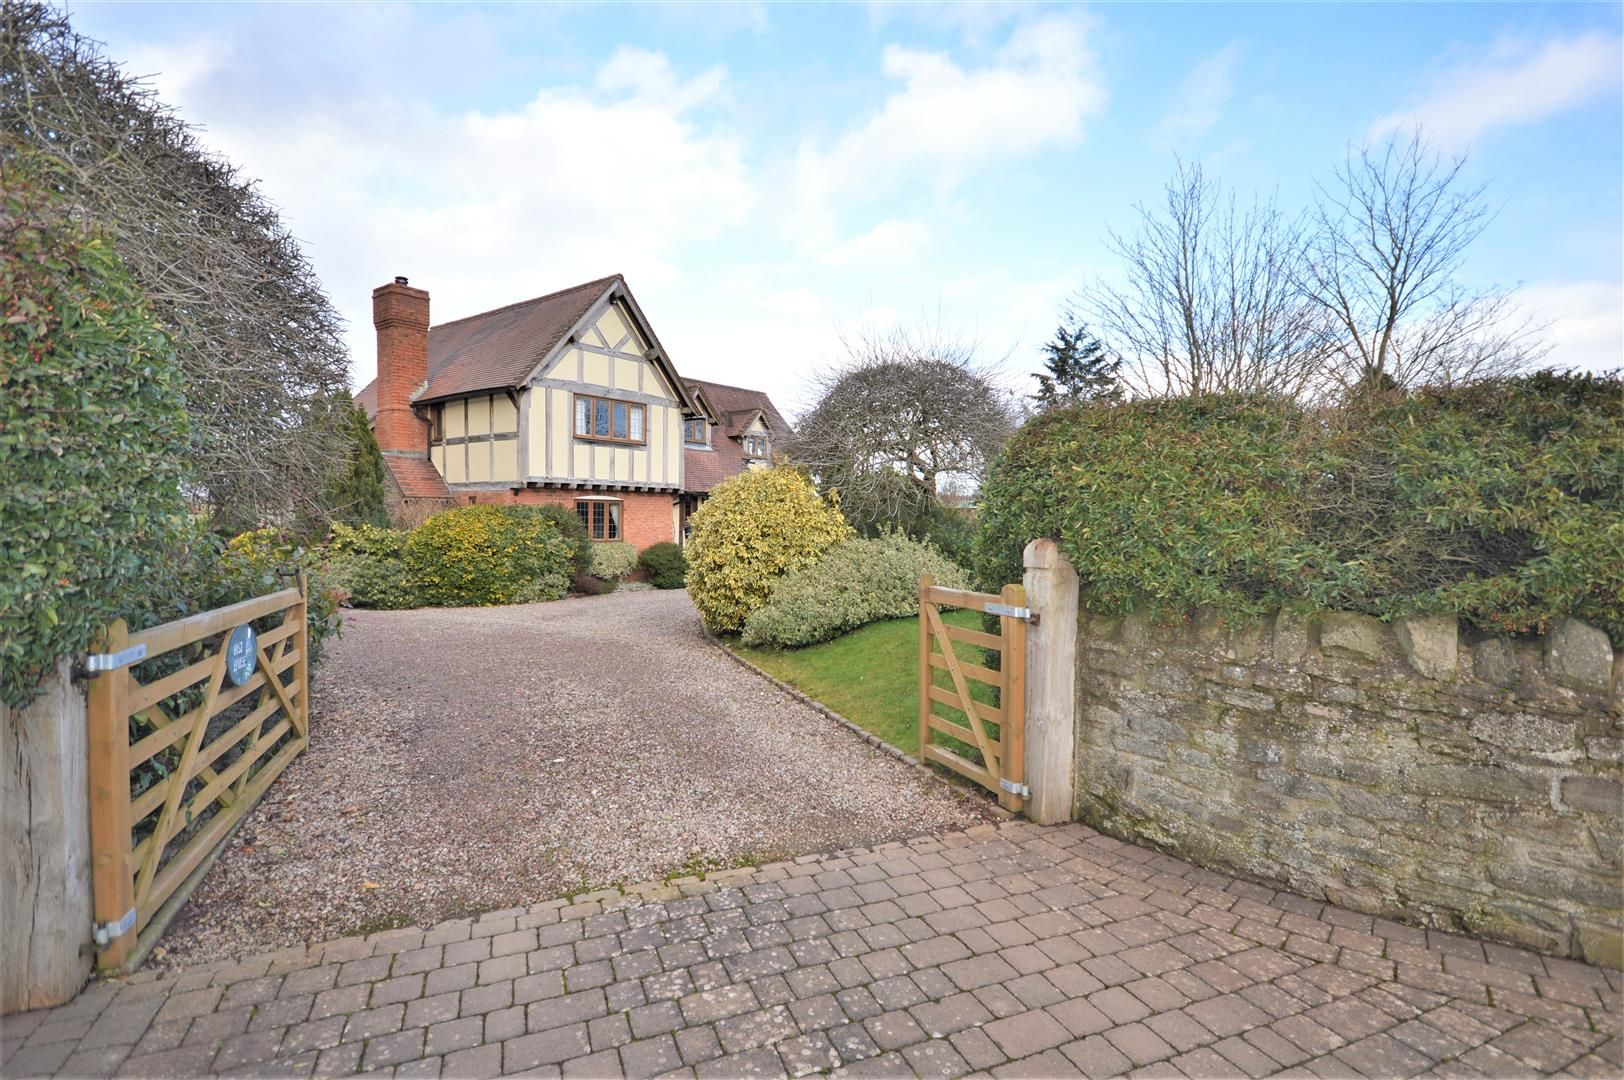 4 bed detached for sale in Marden 8